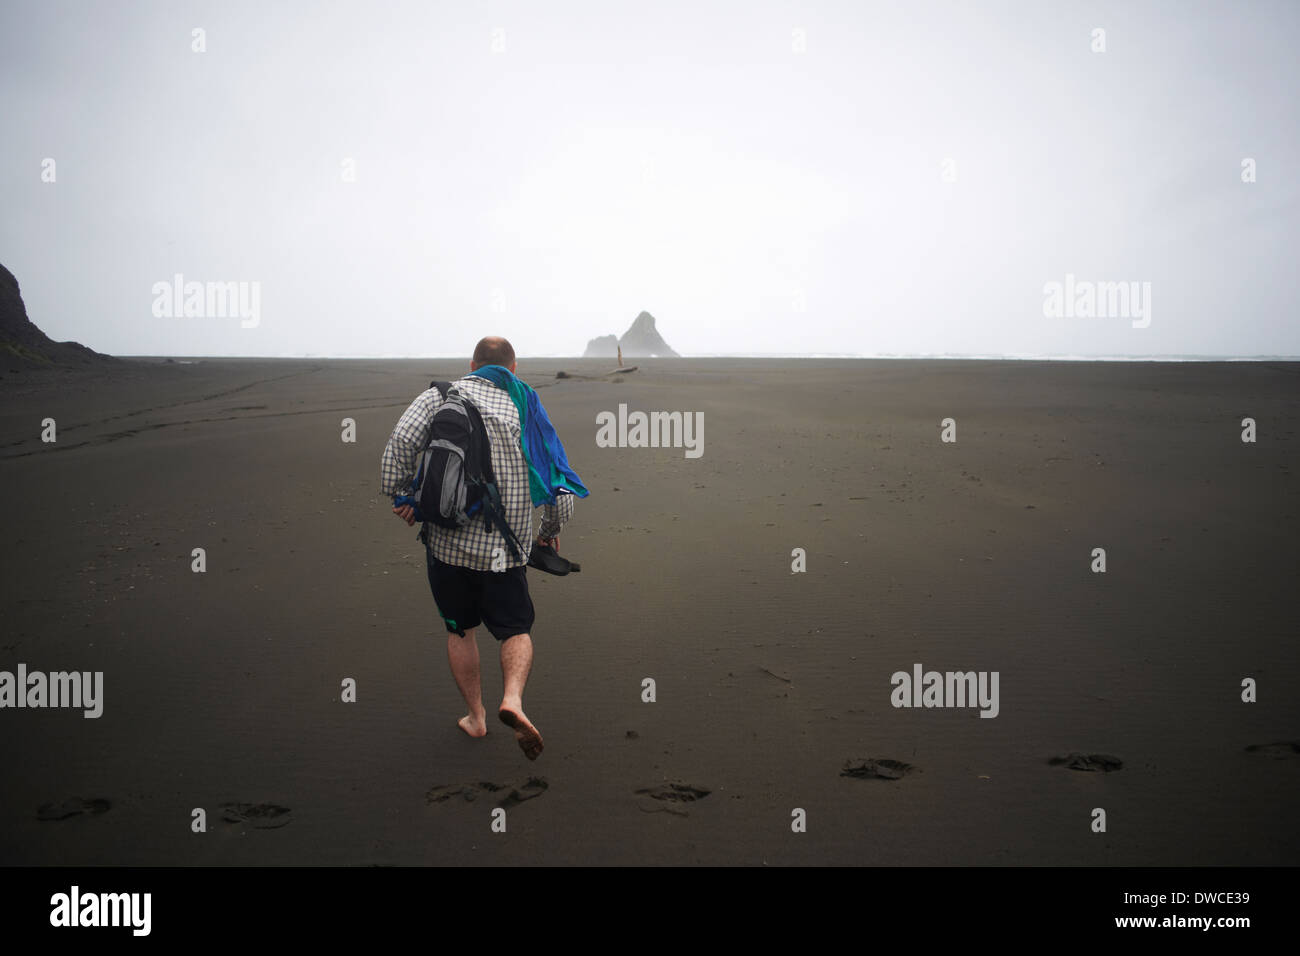 Man walking on Karekare beach, Karekare, New Zealand - Stock Image